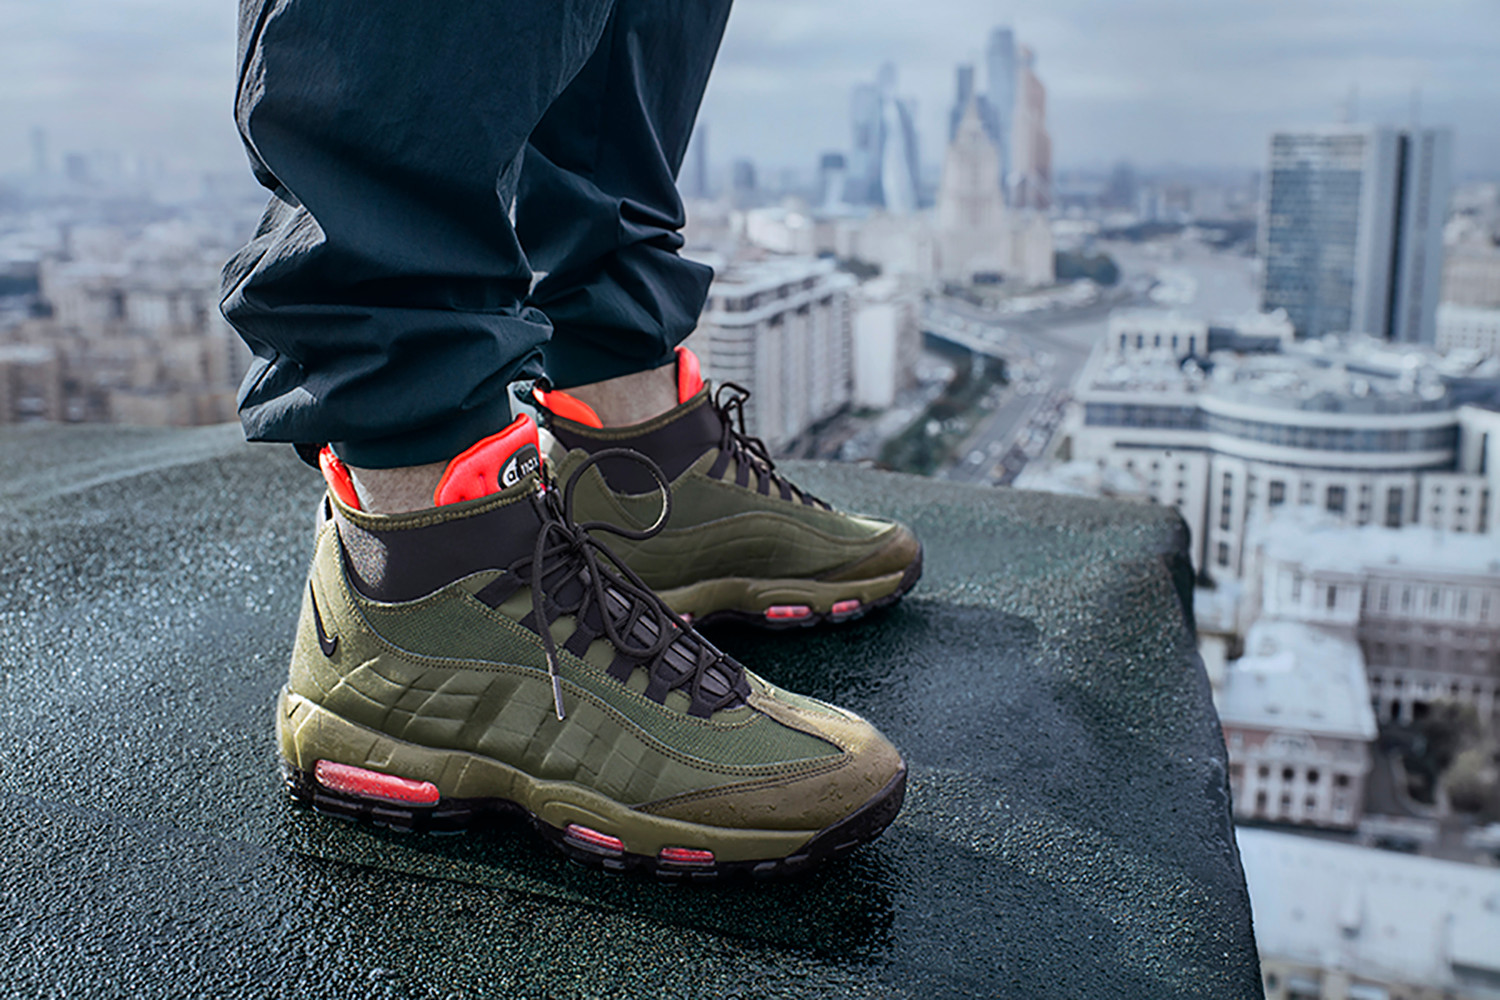 a86f9895 Take a look at the photoshoot below and learn more about the Sneakerboots  collection dropping this holiday season.